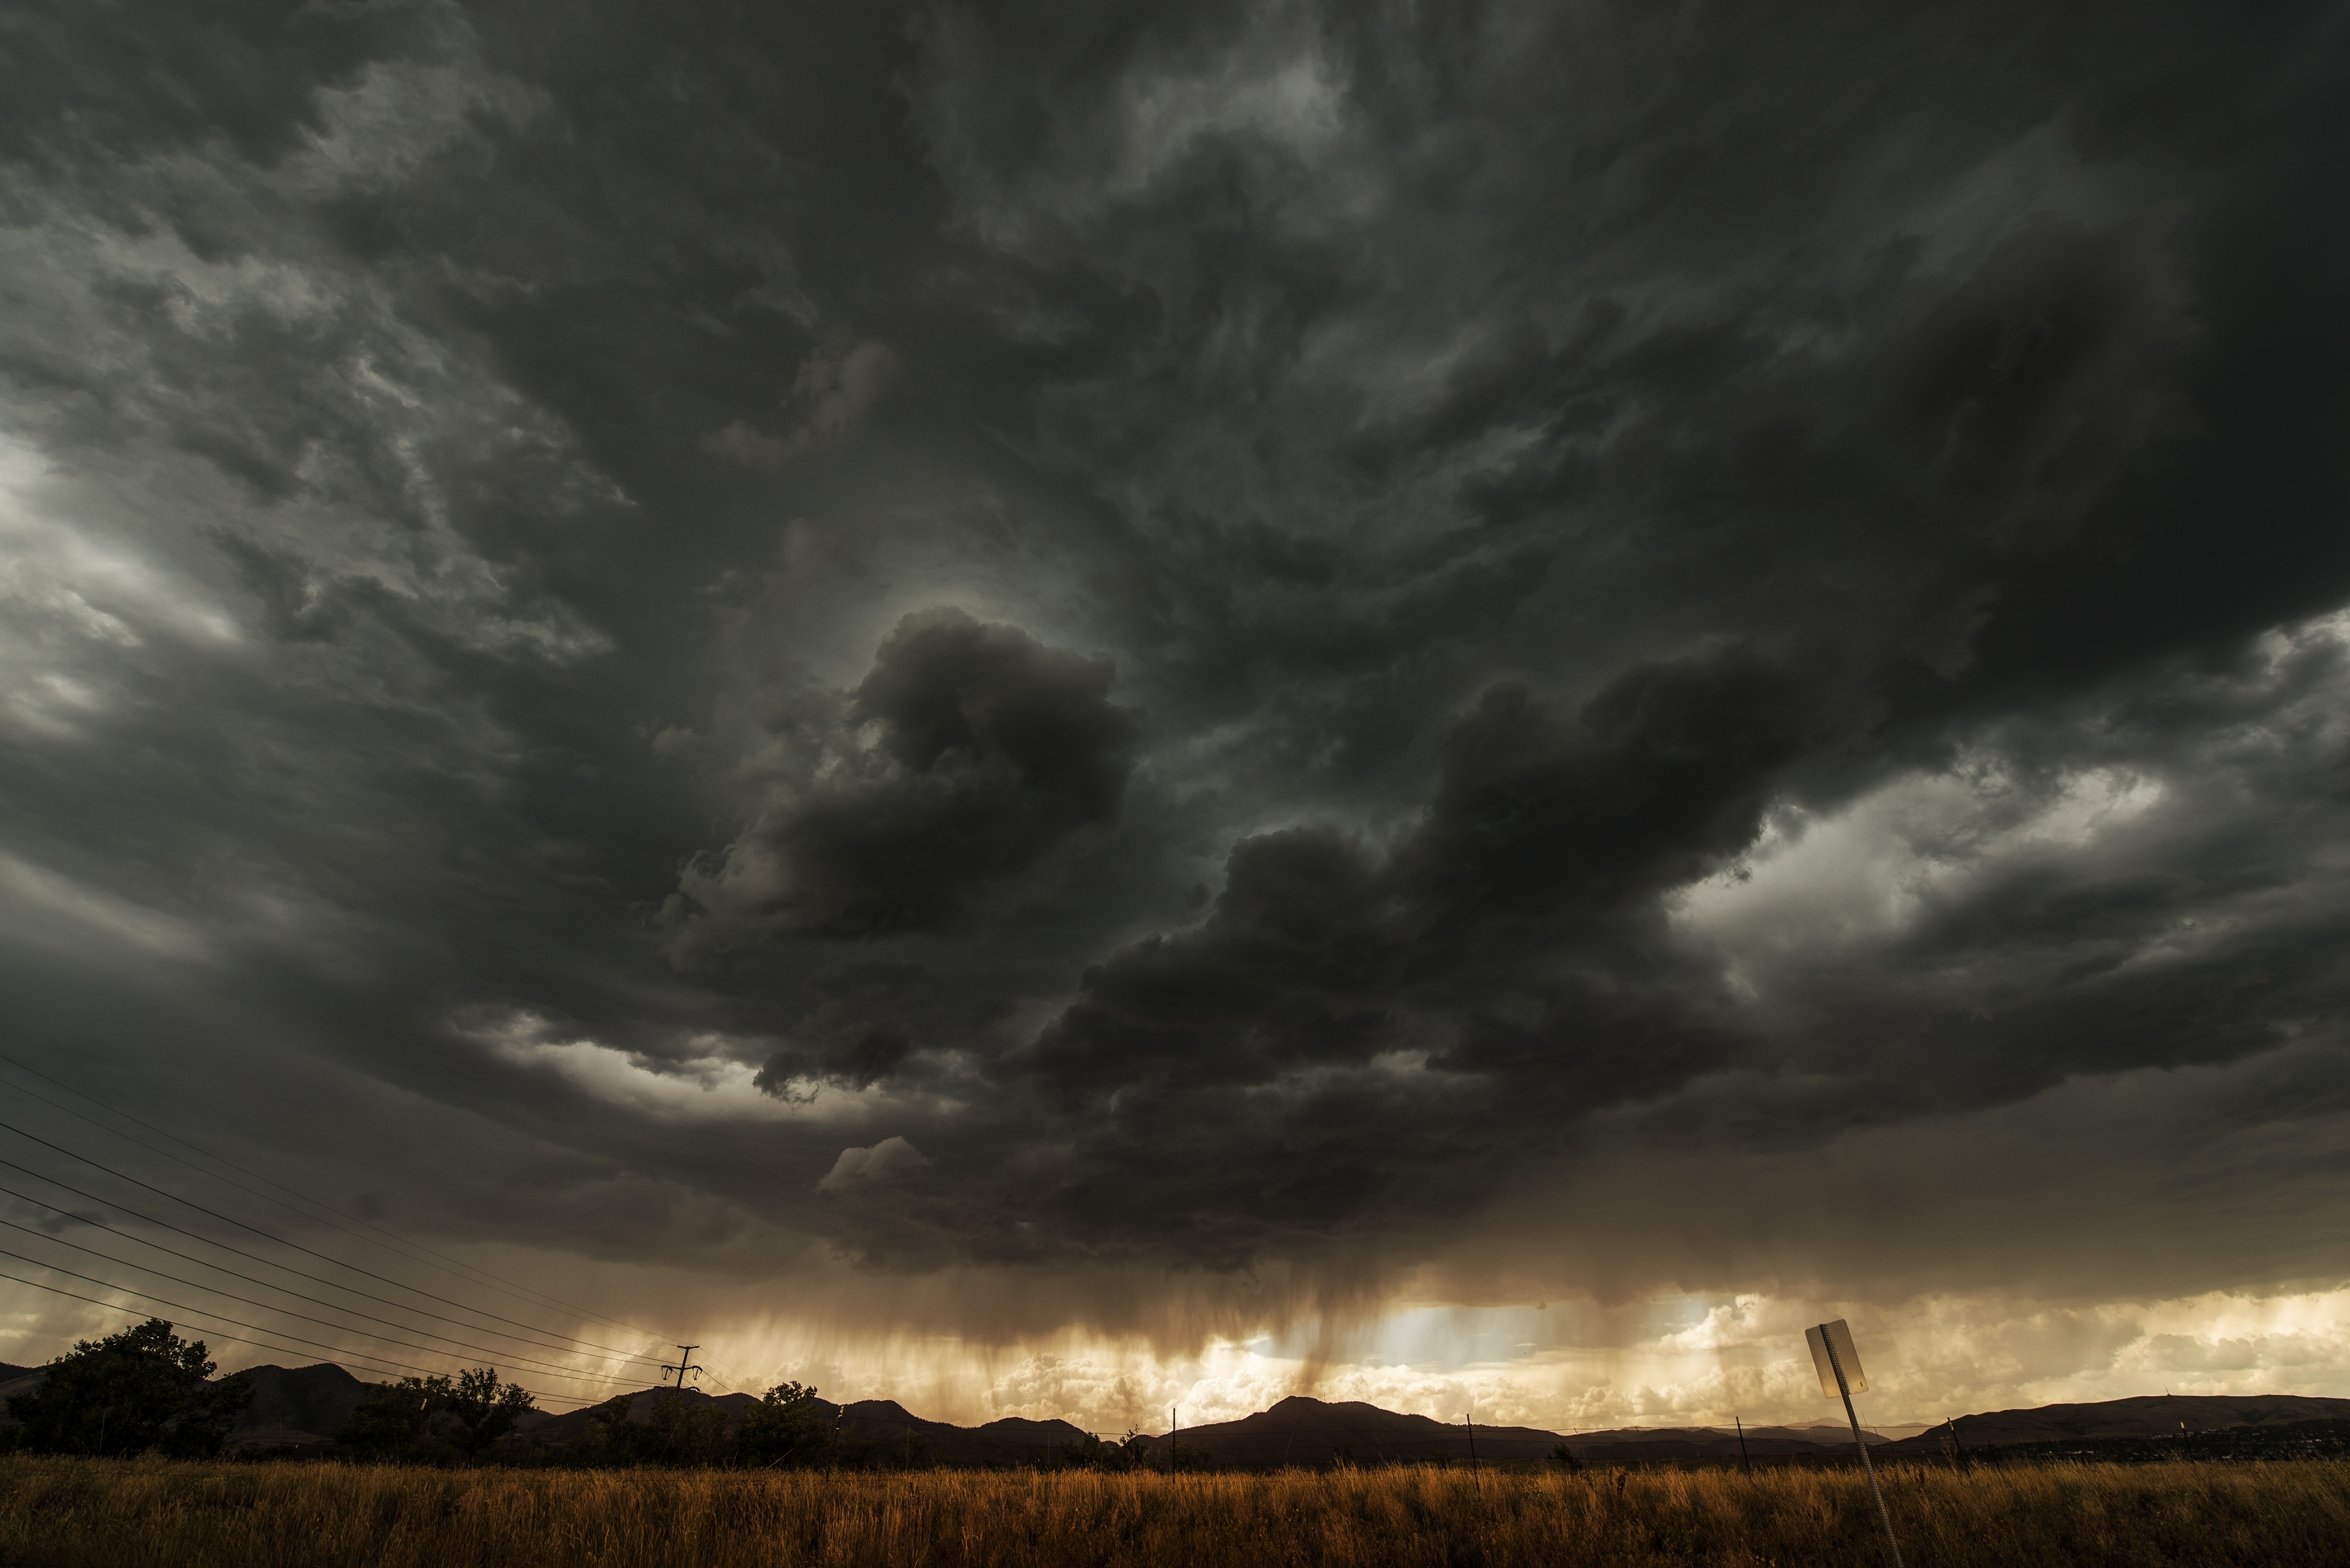 Rising CO2 may increase dangerous weather extremes, whatever happens to global temperatures